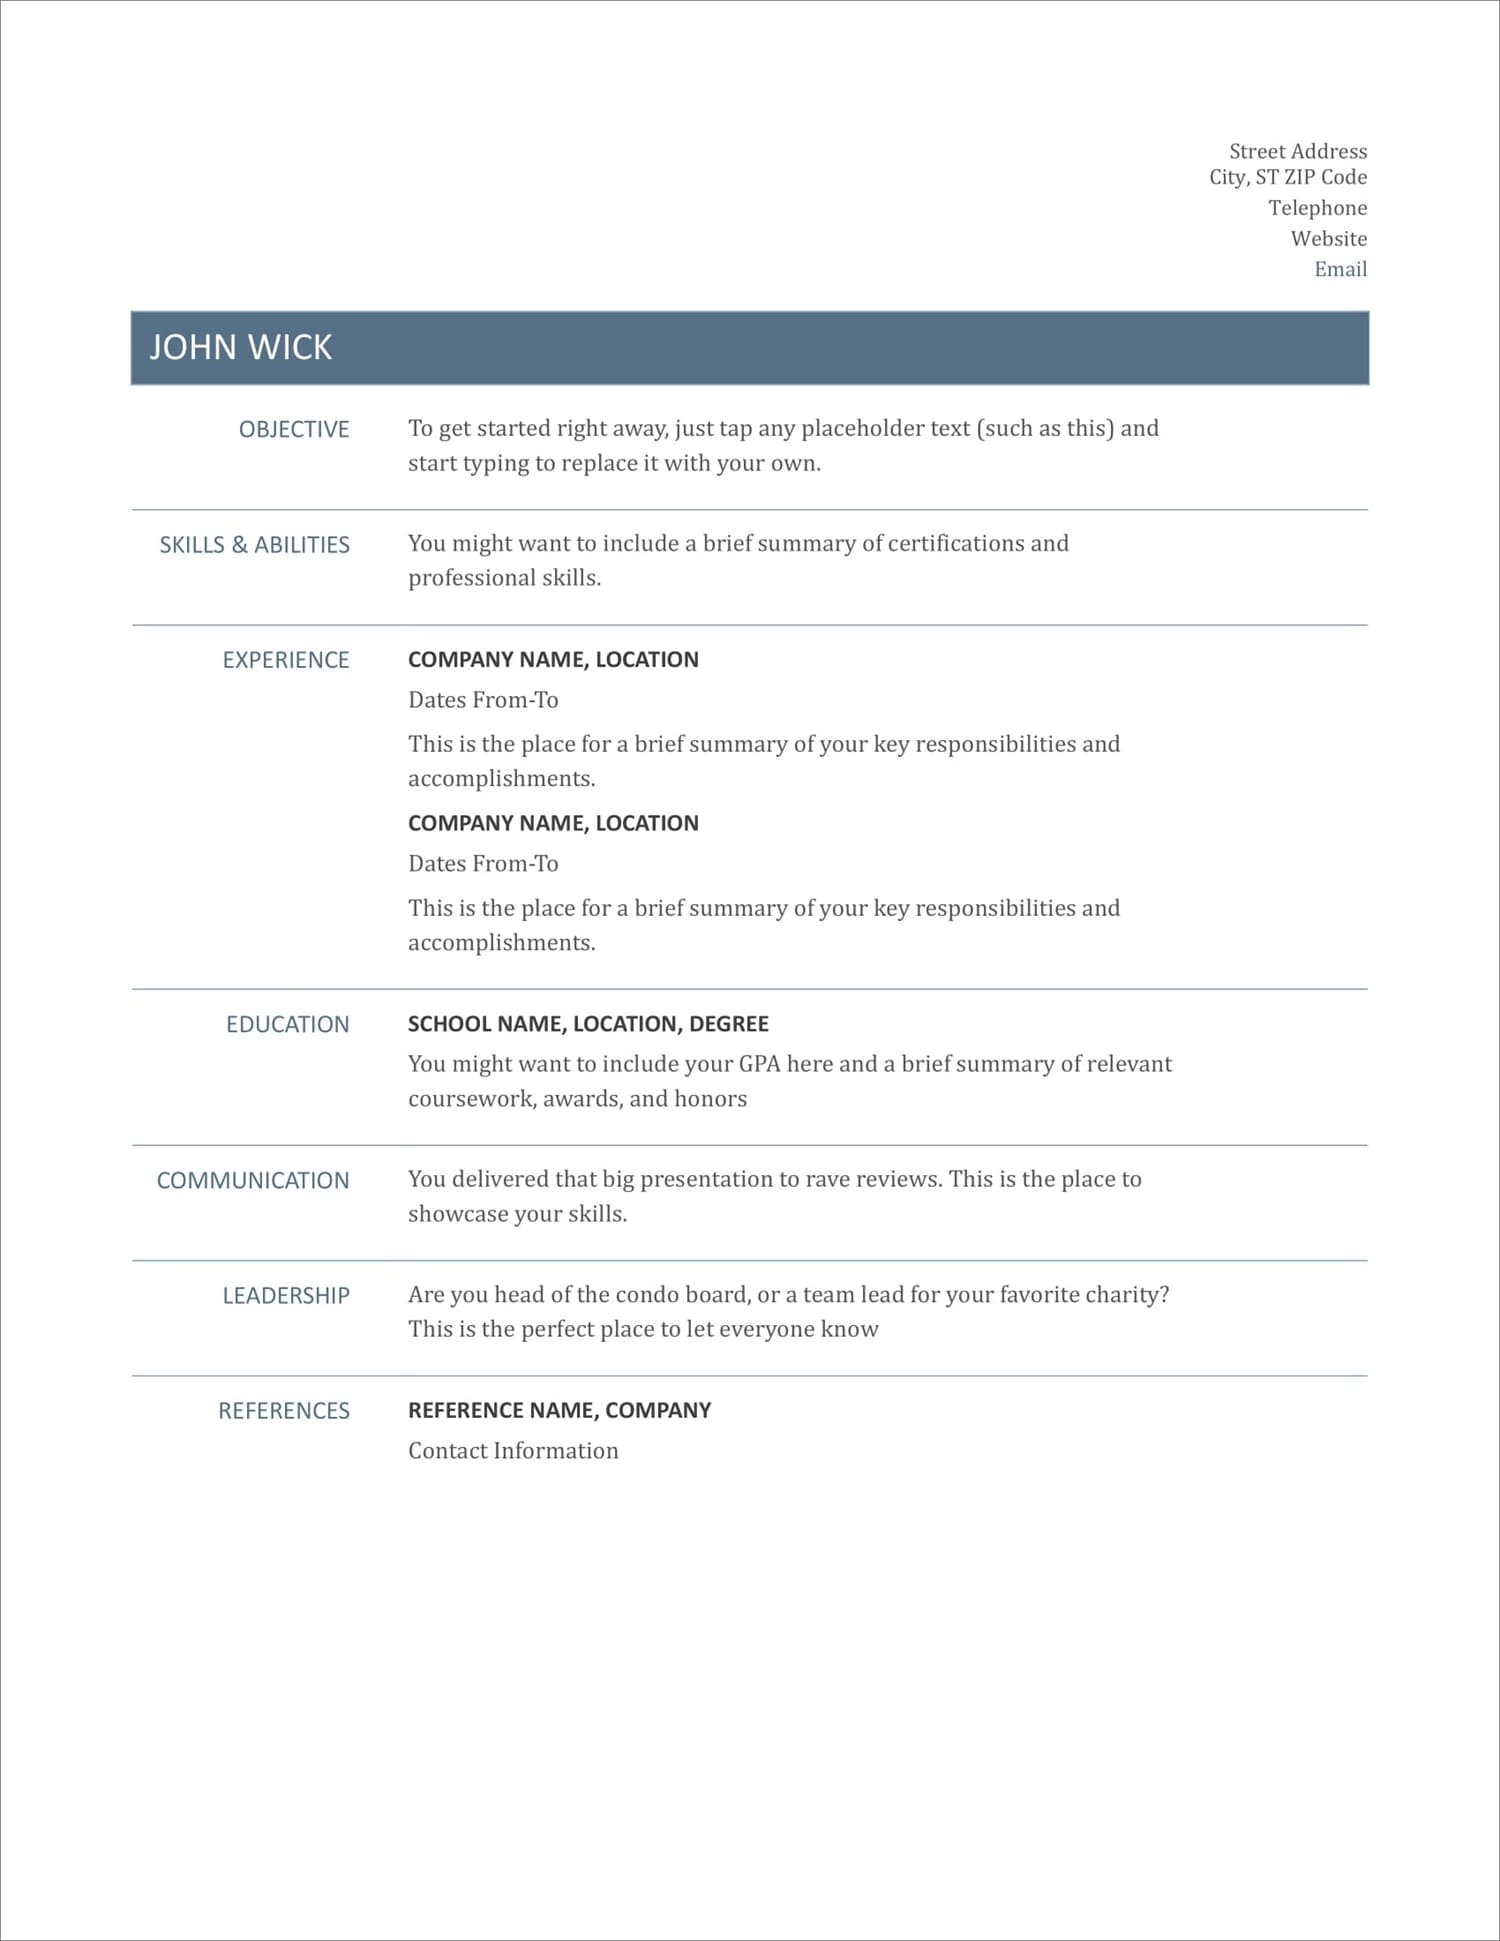 free resume templates for to now quick and easy new automotive warranty manager Resume Quick And Easy Resume